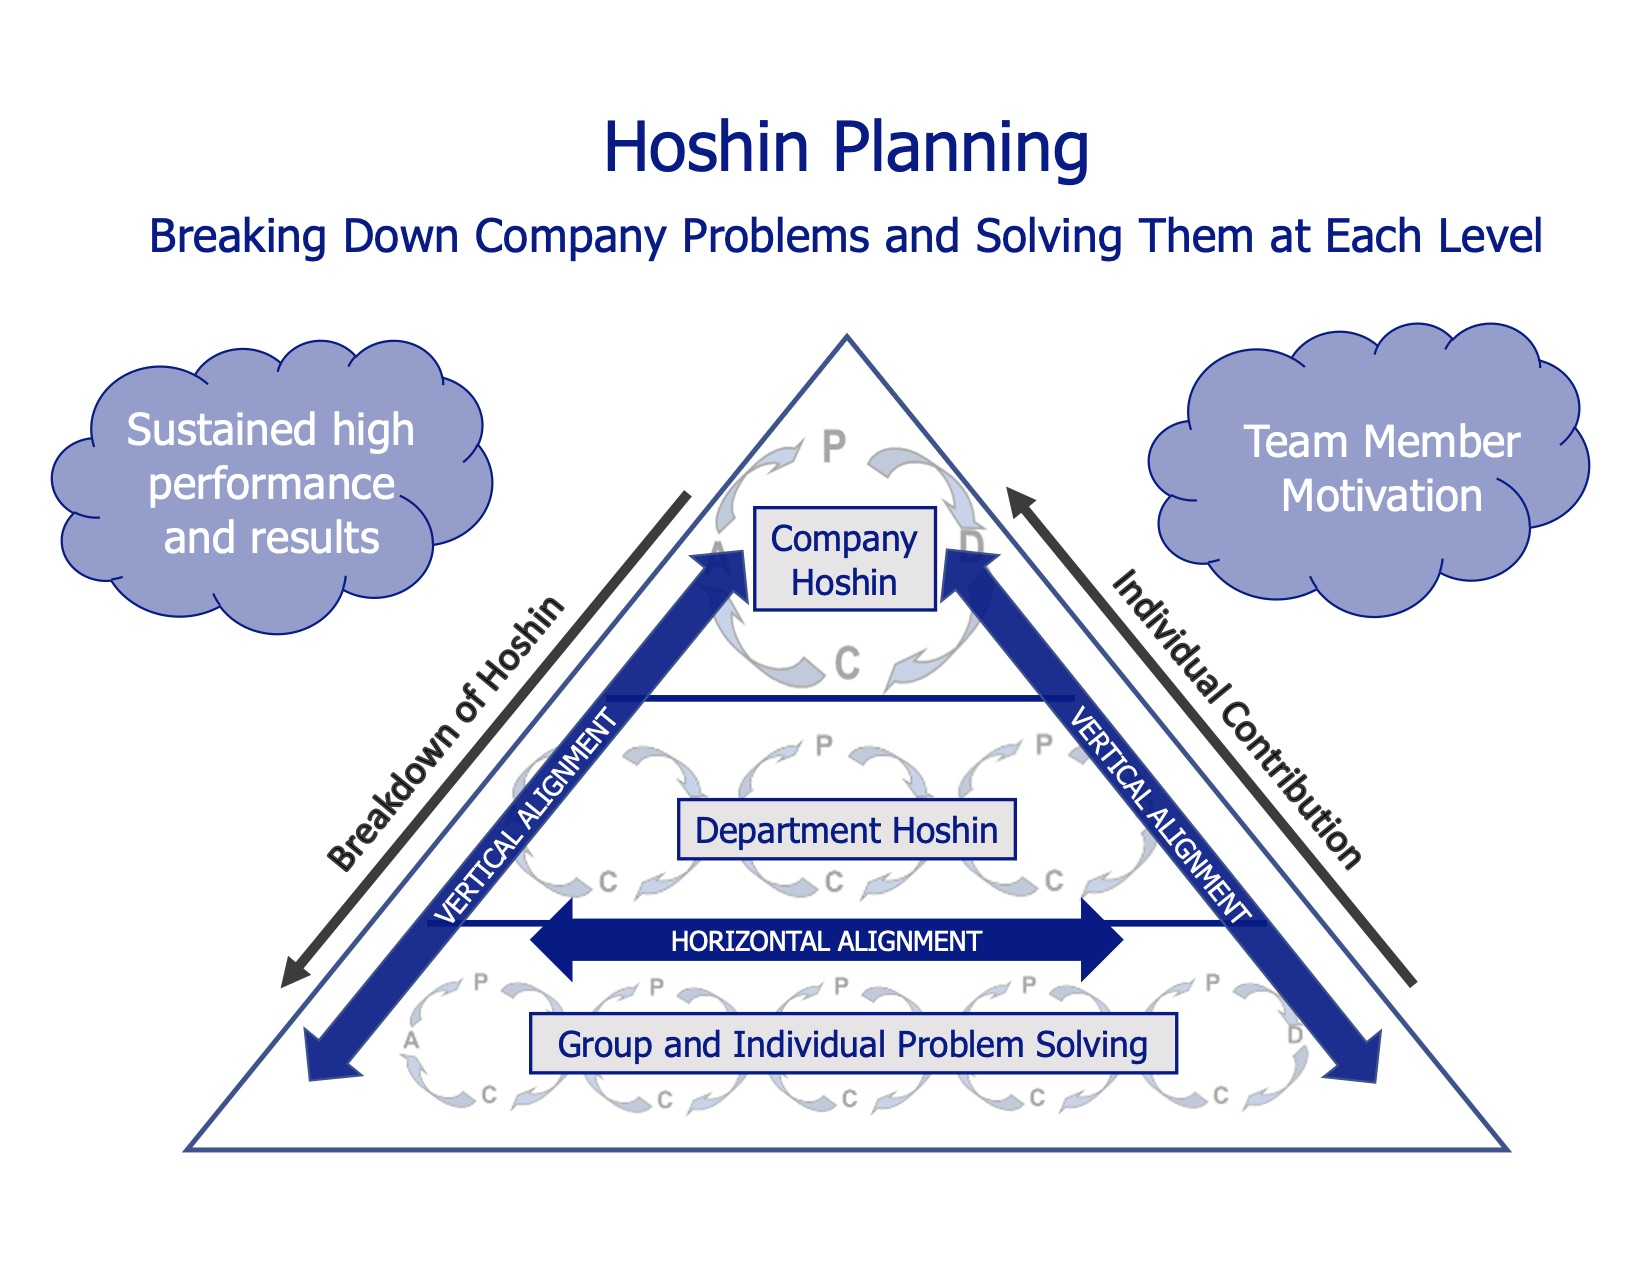 Hoshin Planning (Strategy Deployment)